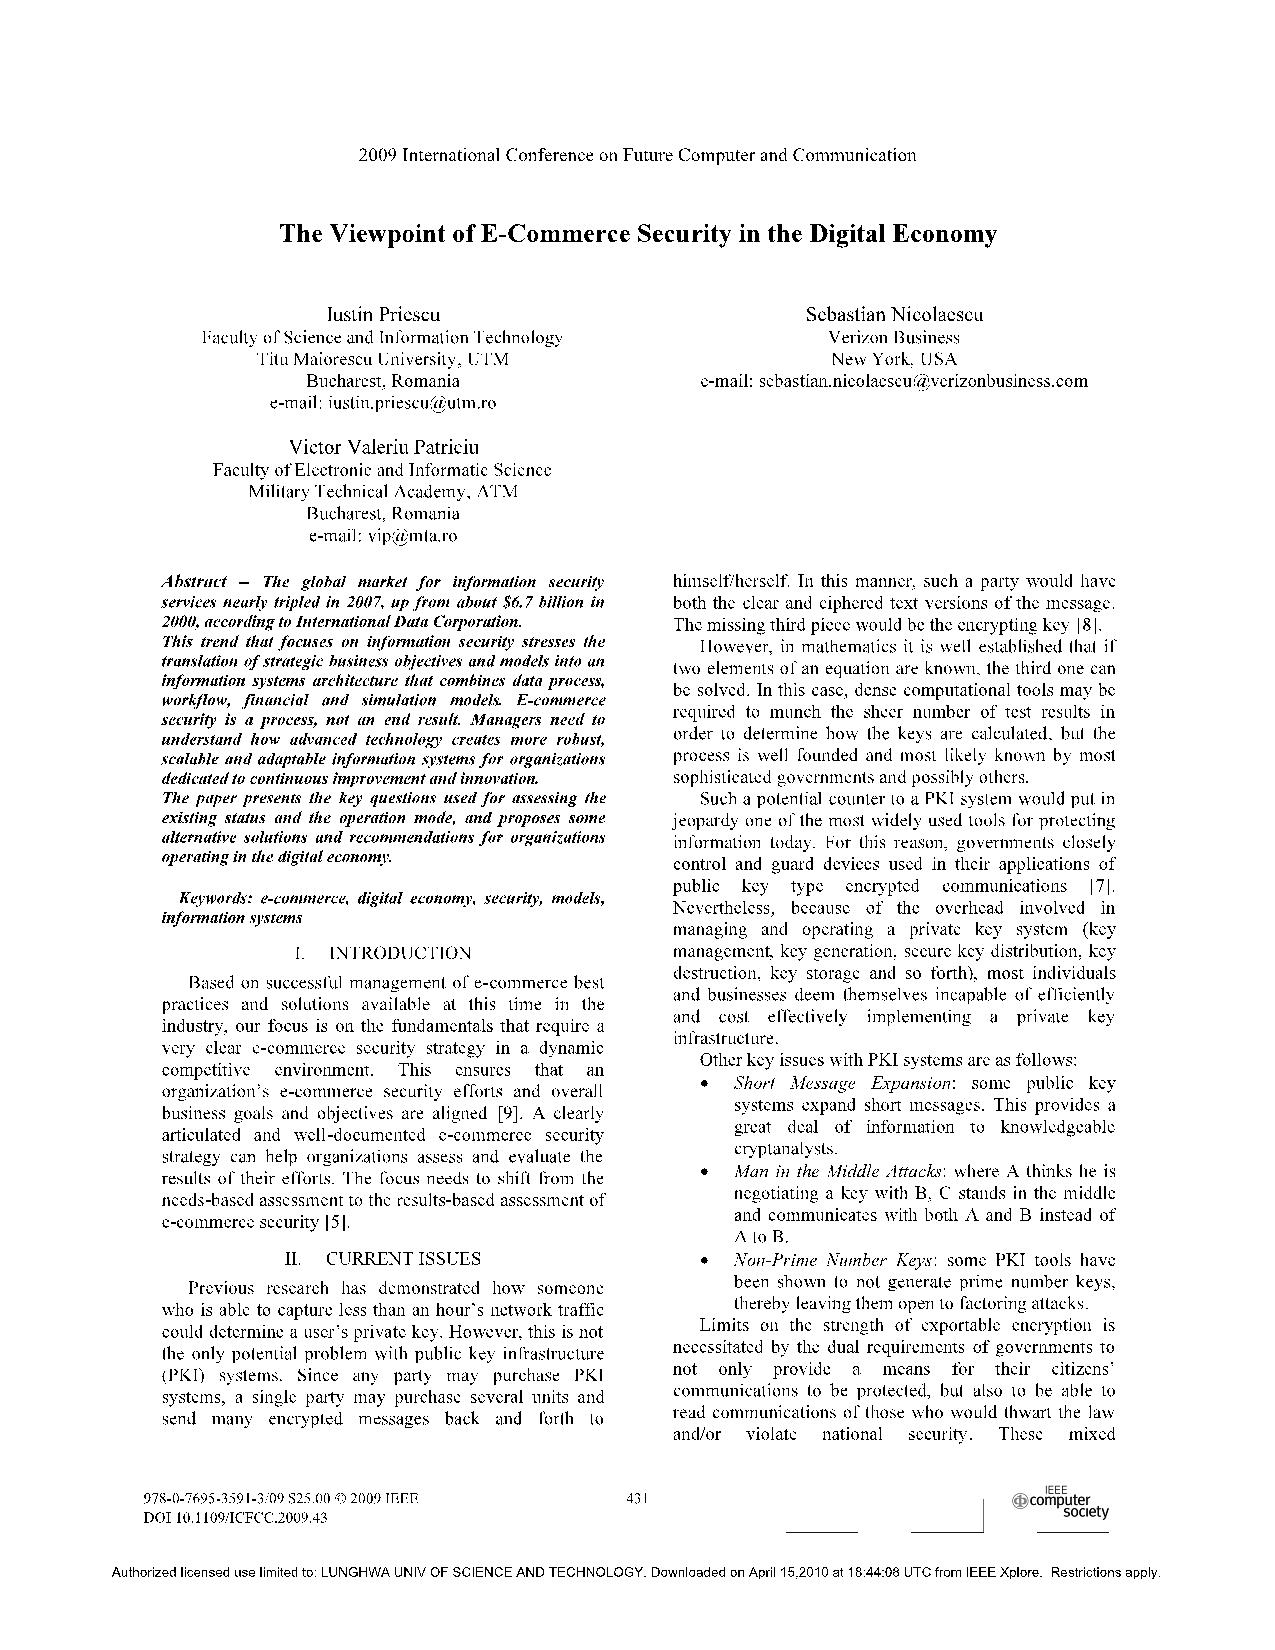 The Viewpoint of E-Commerce Security in the Digital Economy 6